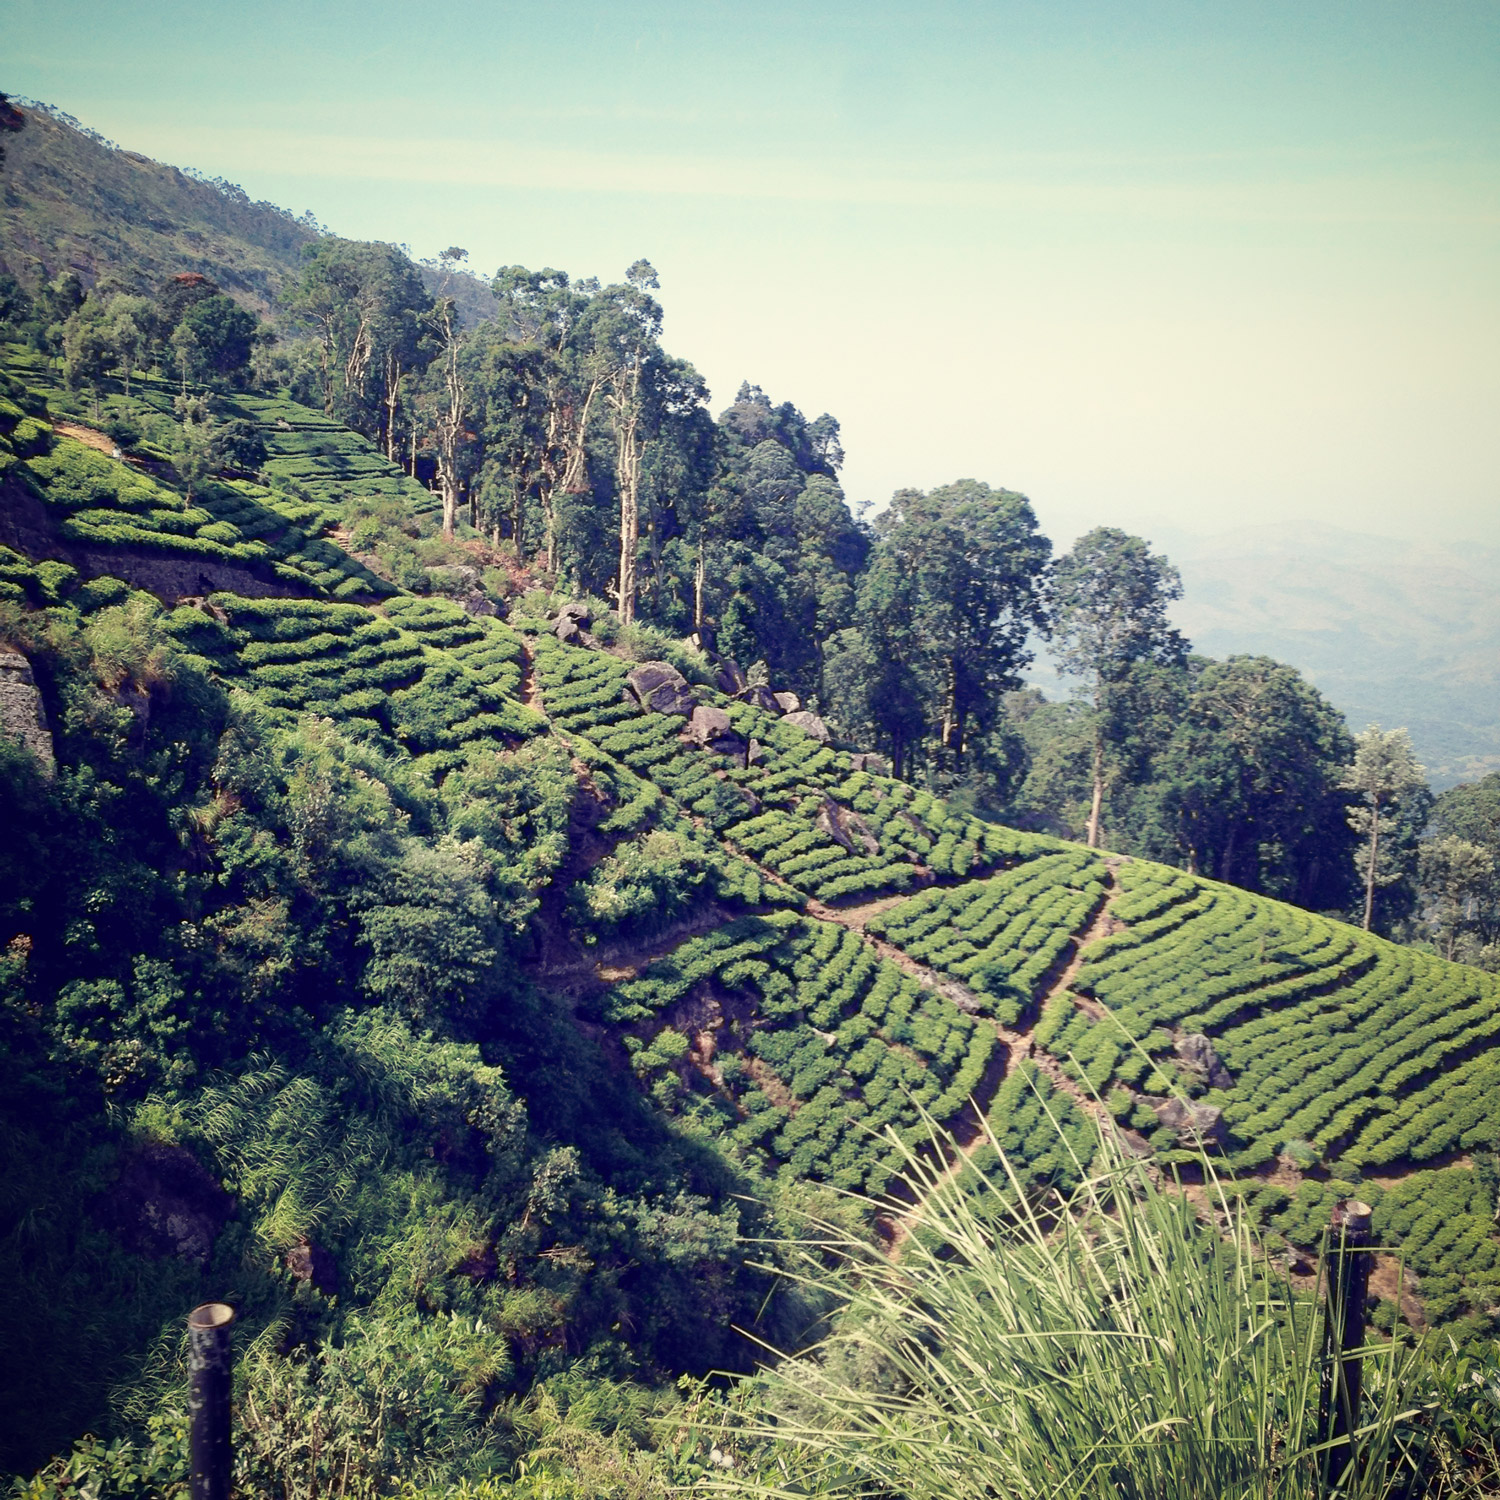 View of the tea plantations halfway up Liptons seat.